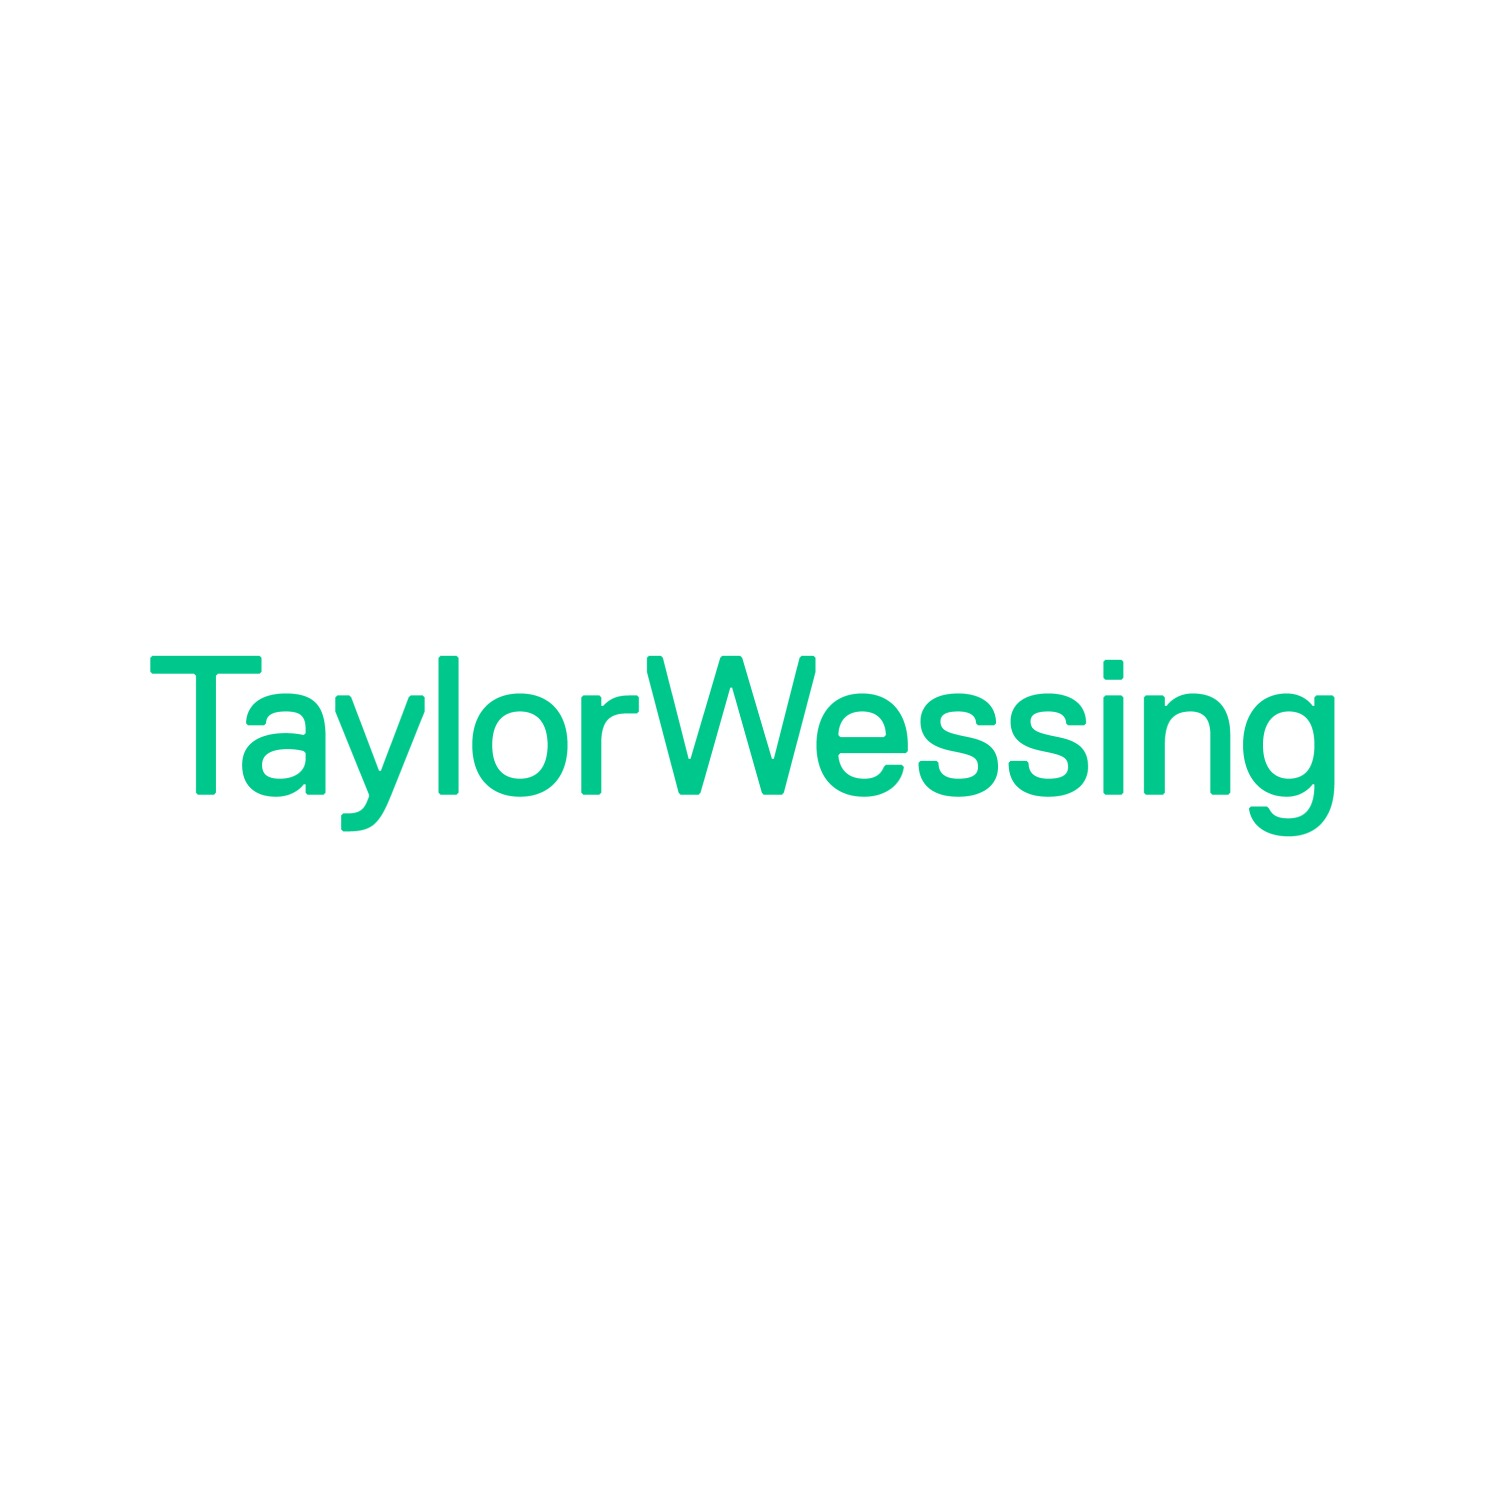 the Taylor Wessing logo.